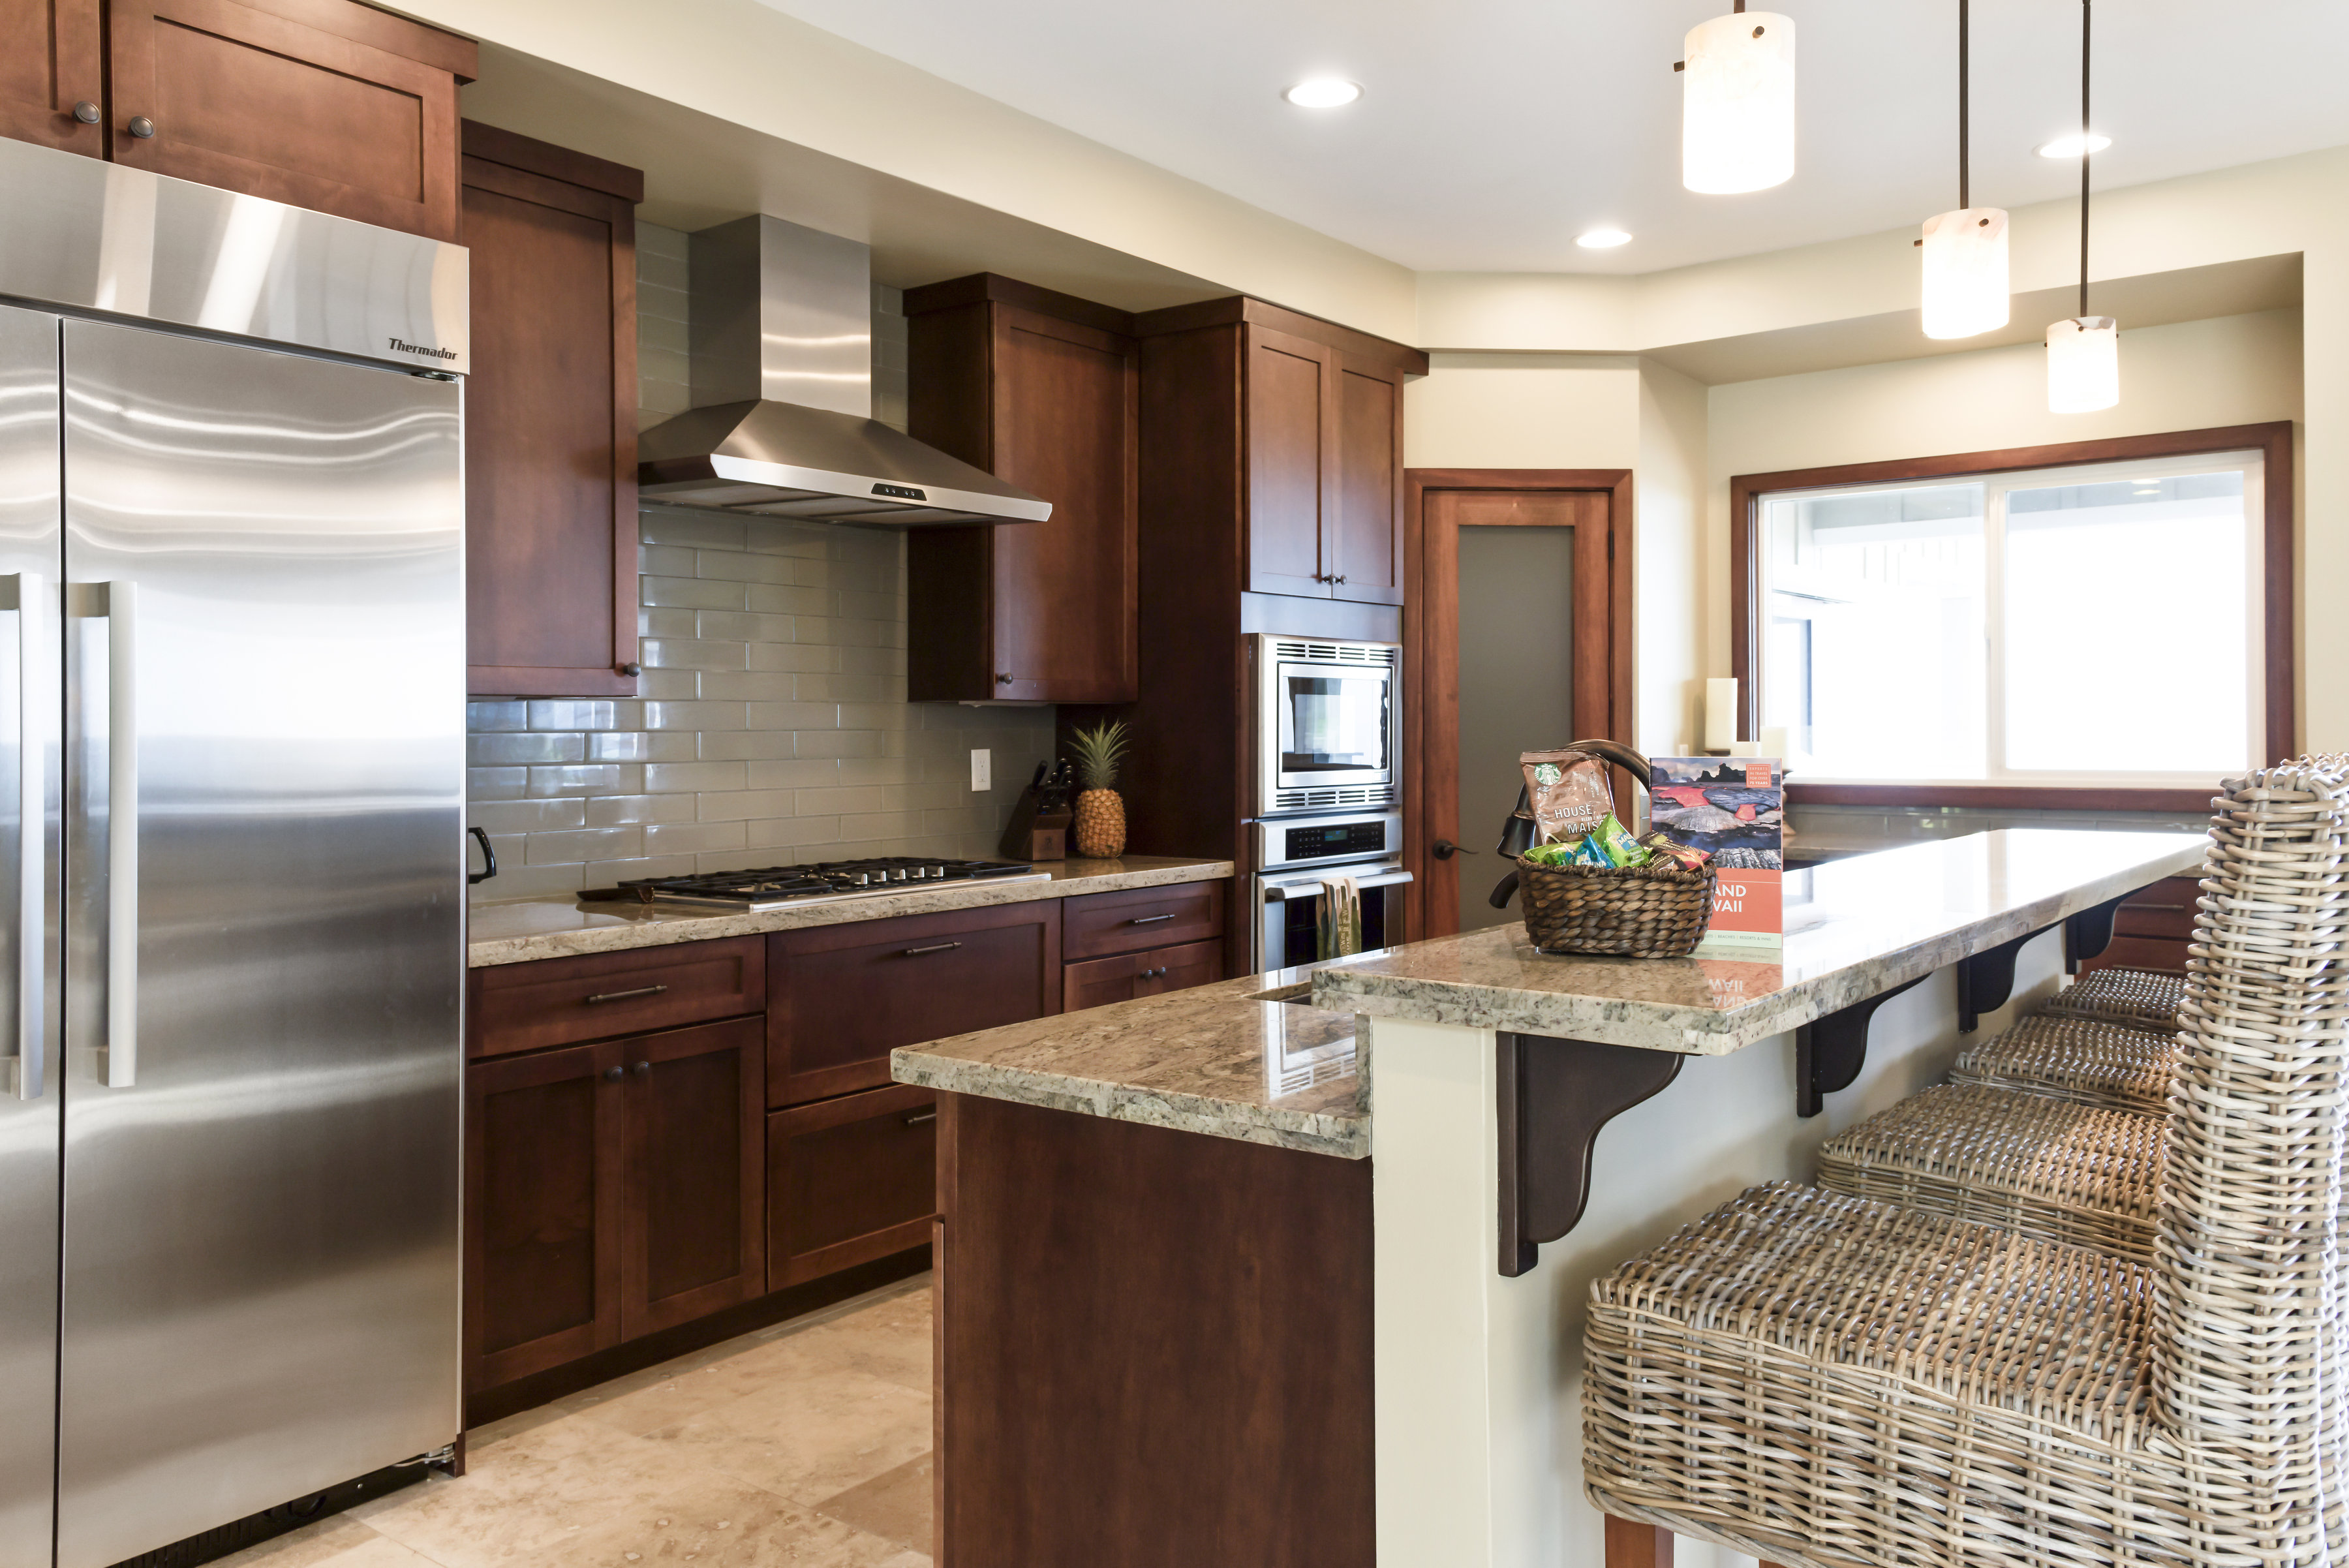 Chefs kitchen with Thermidor appliances